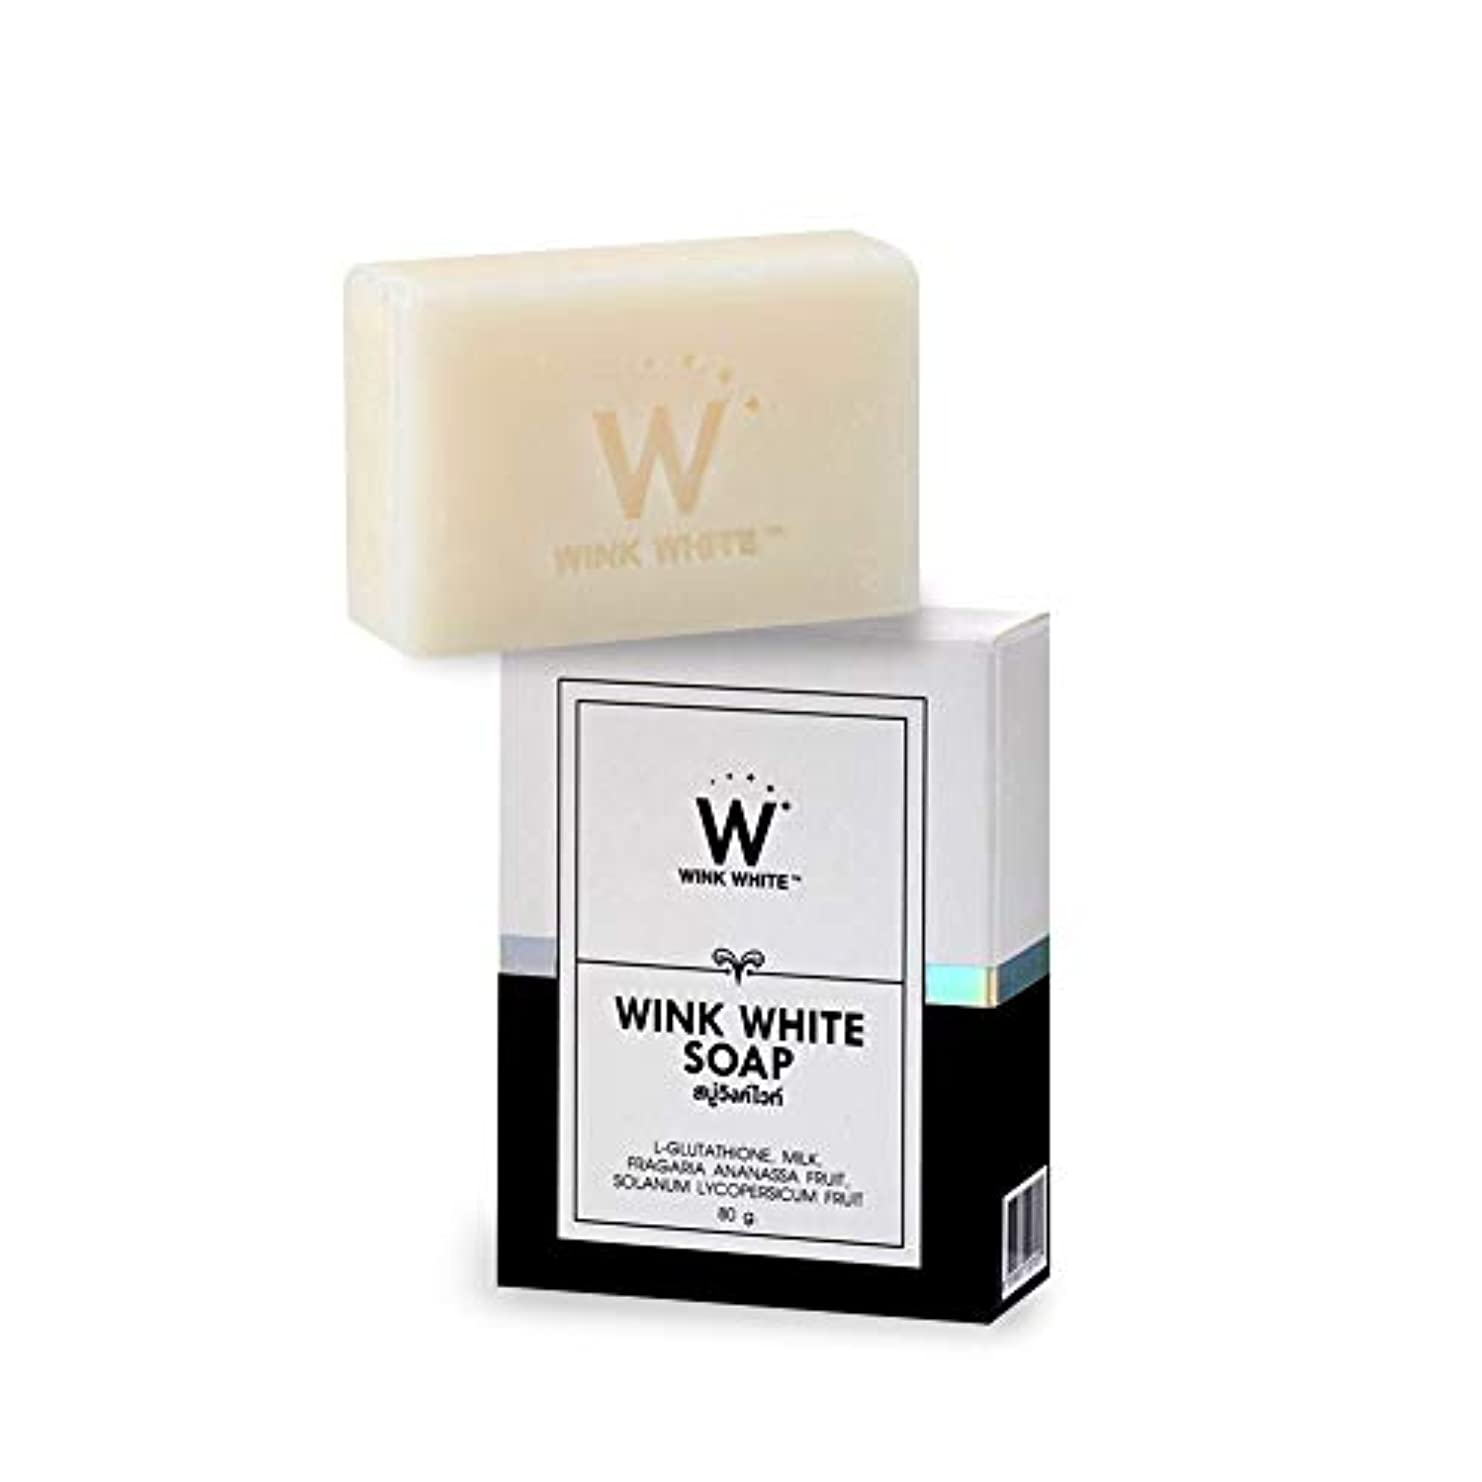 アルミニウムビジョン菊Mangos Teen White Soap Base Wink White Soap Gluta Pure Skin Body Whitening Strawberry for Whitening Skin All Natural...